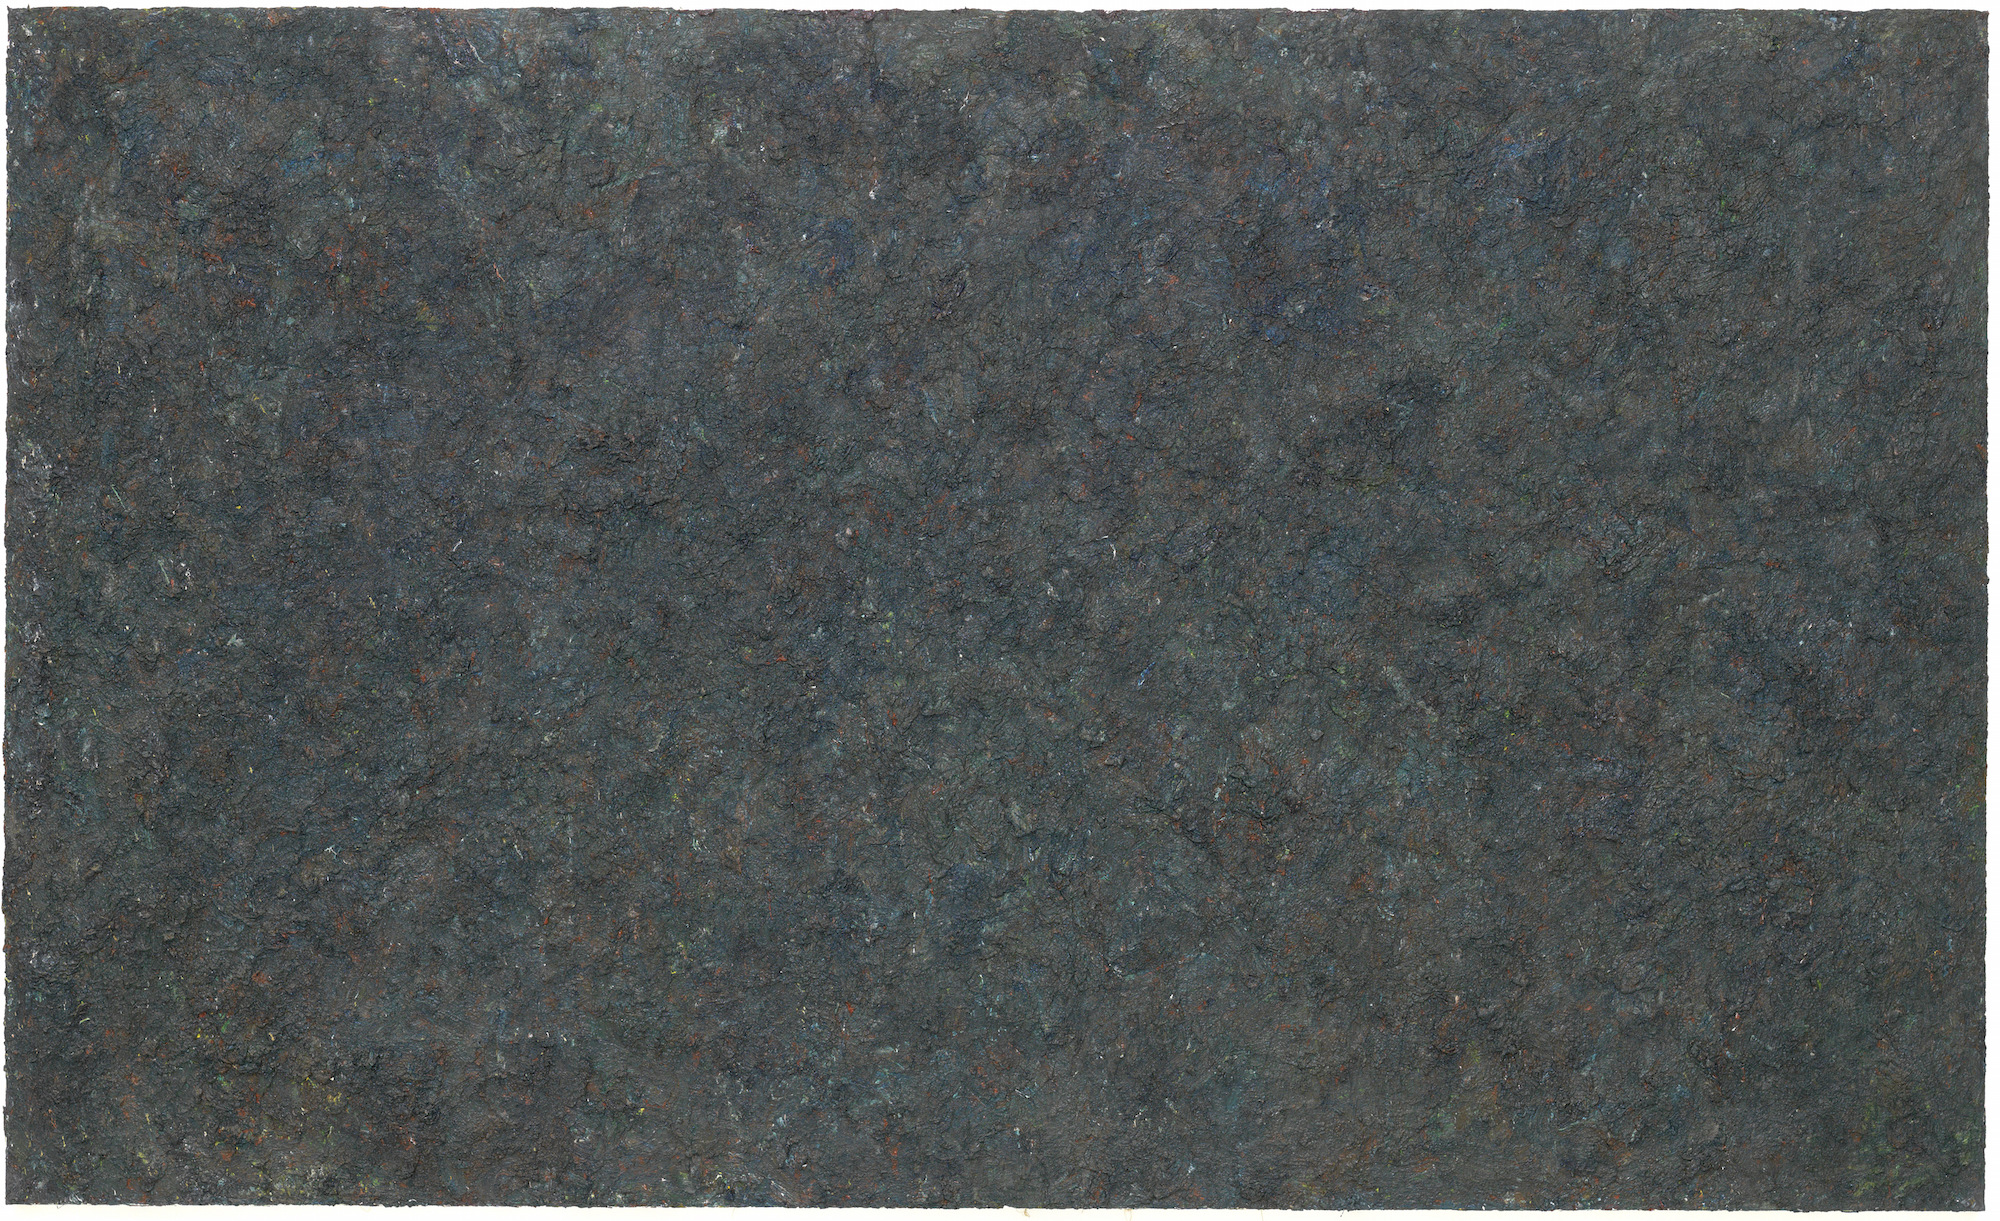 Milton Resnick  Veil of Isis , 1985 Oil on canvas 75 x 124 inches